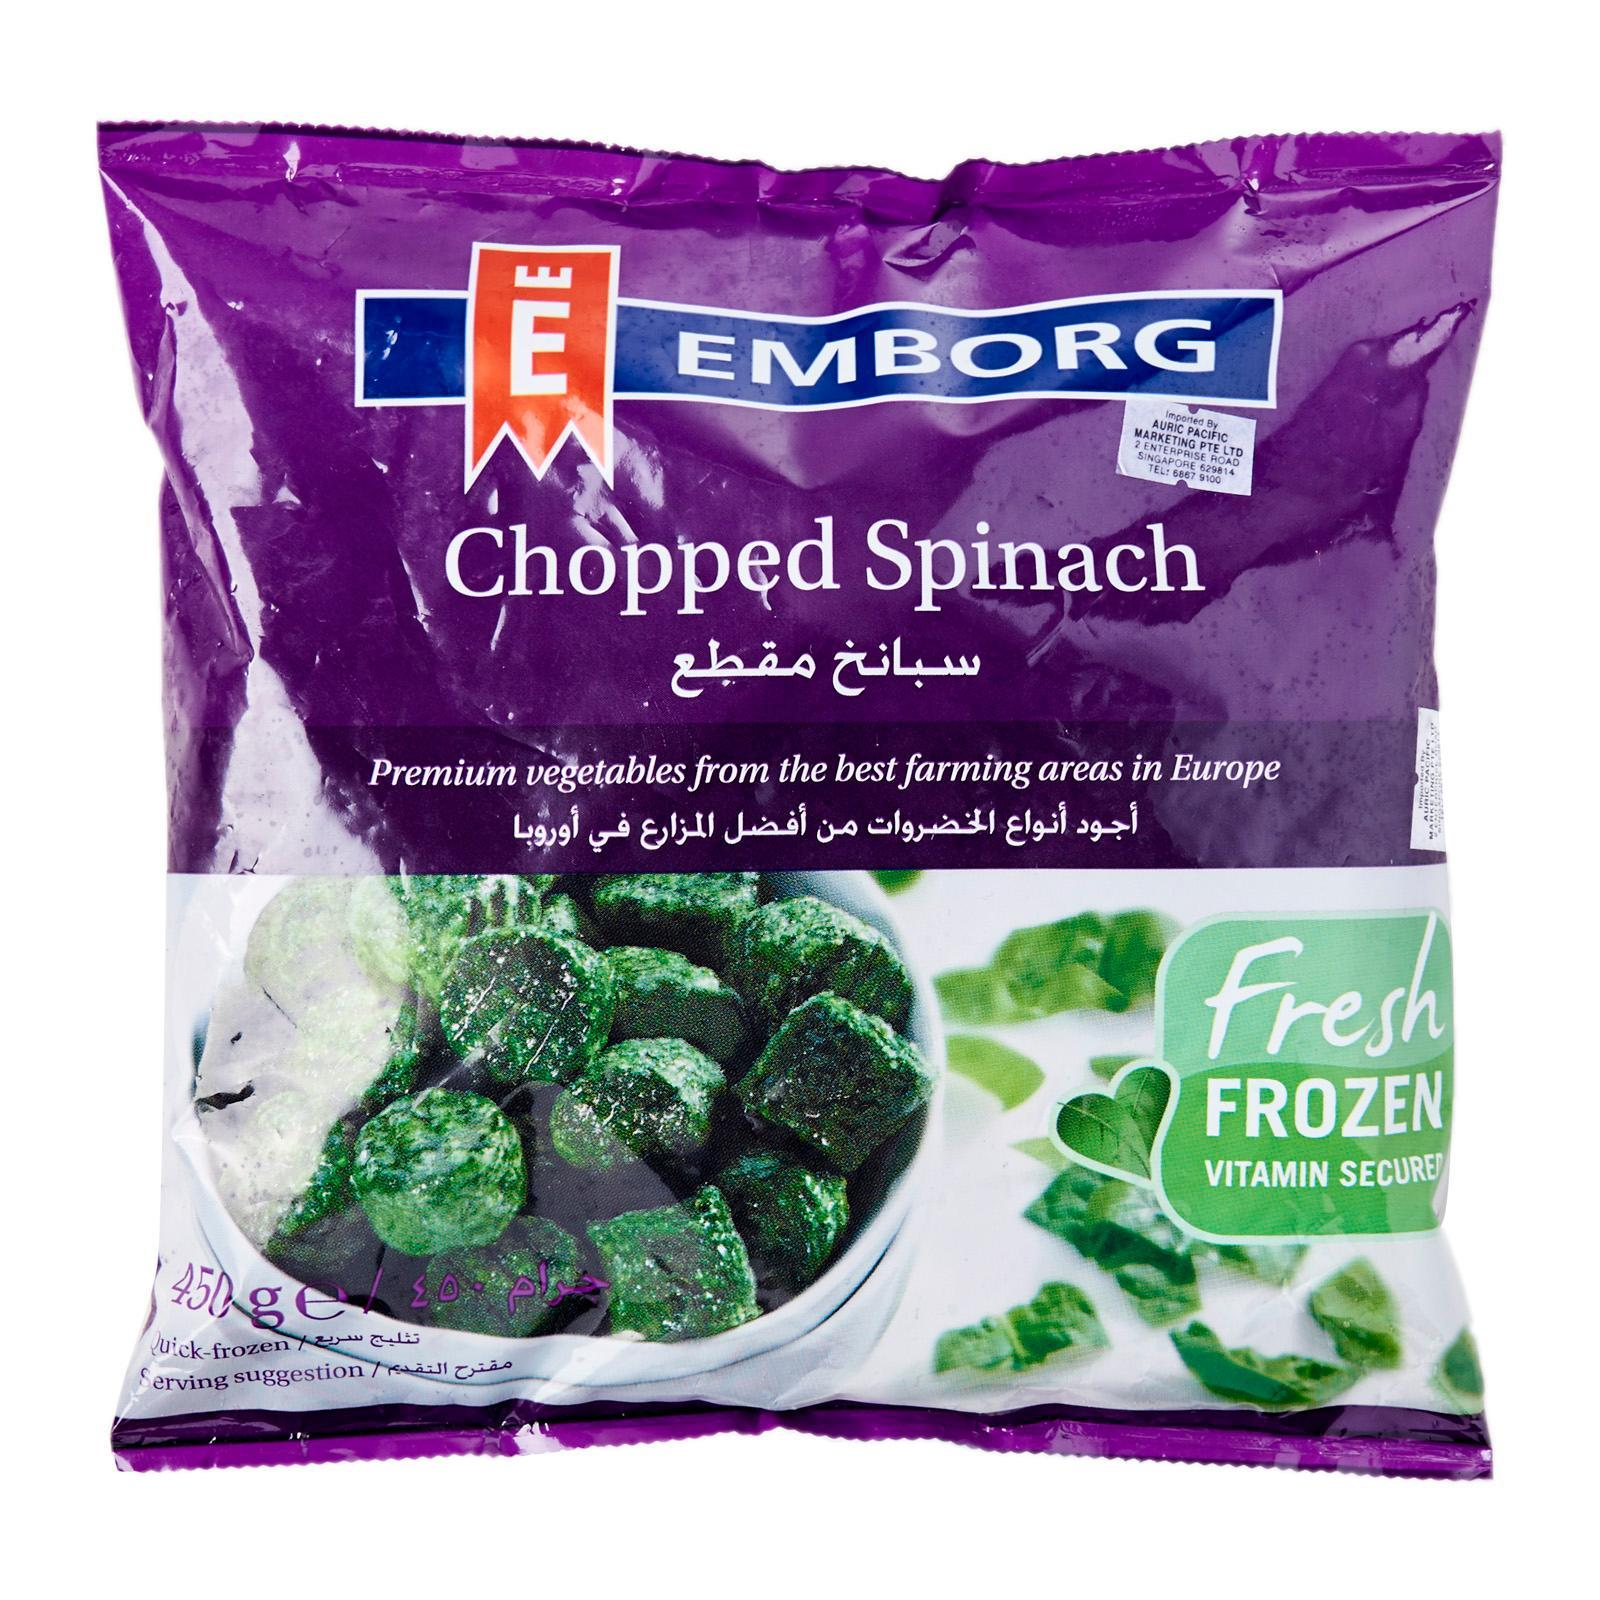 Emborg Chopped Spinach - Frozen By Redmart.